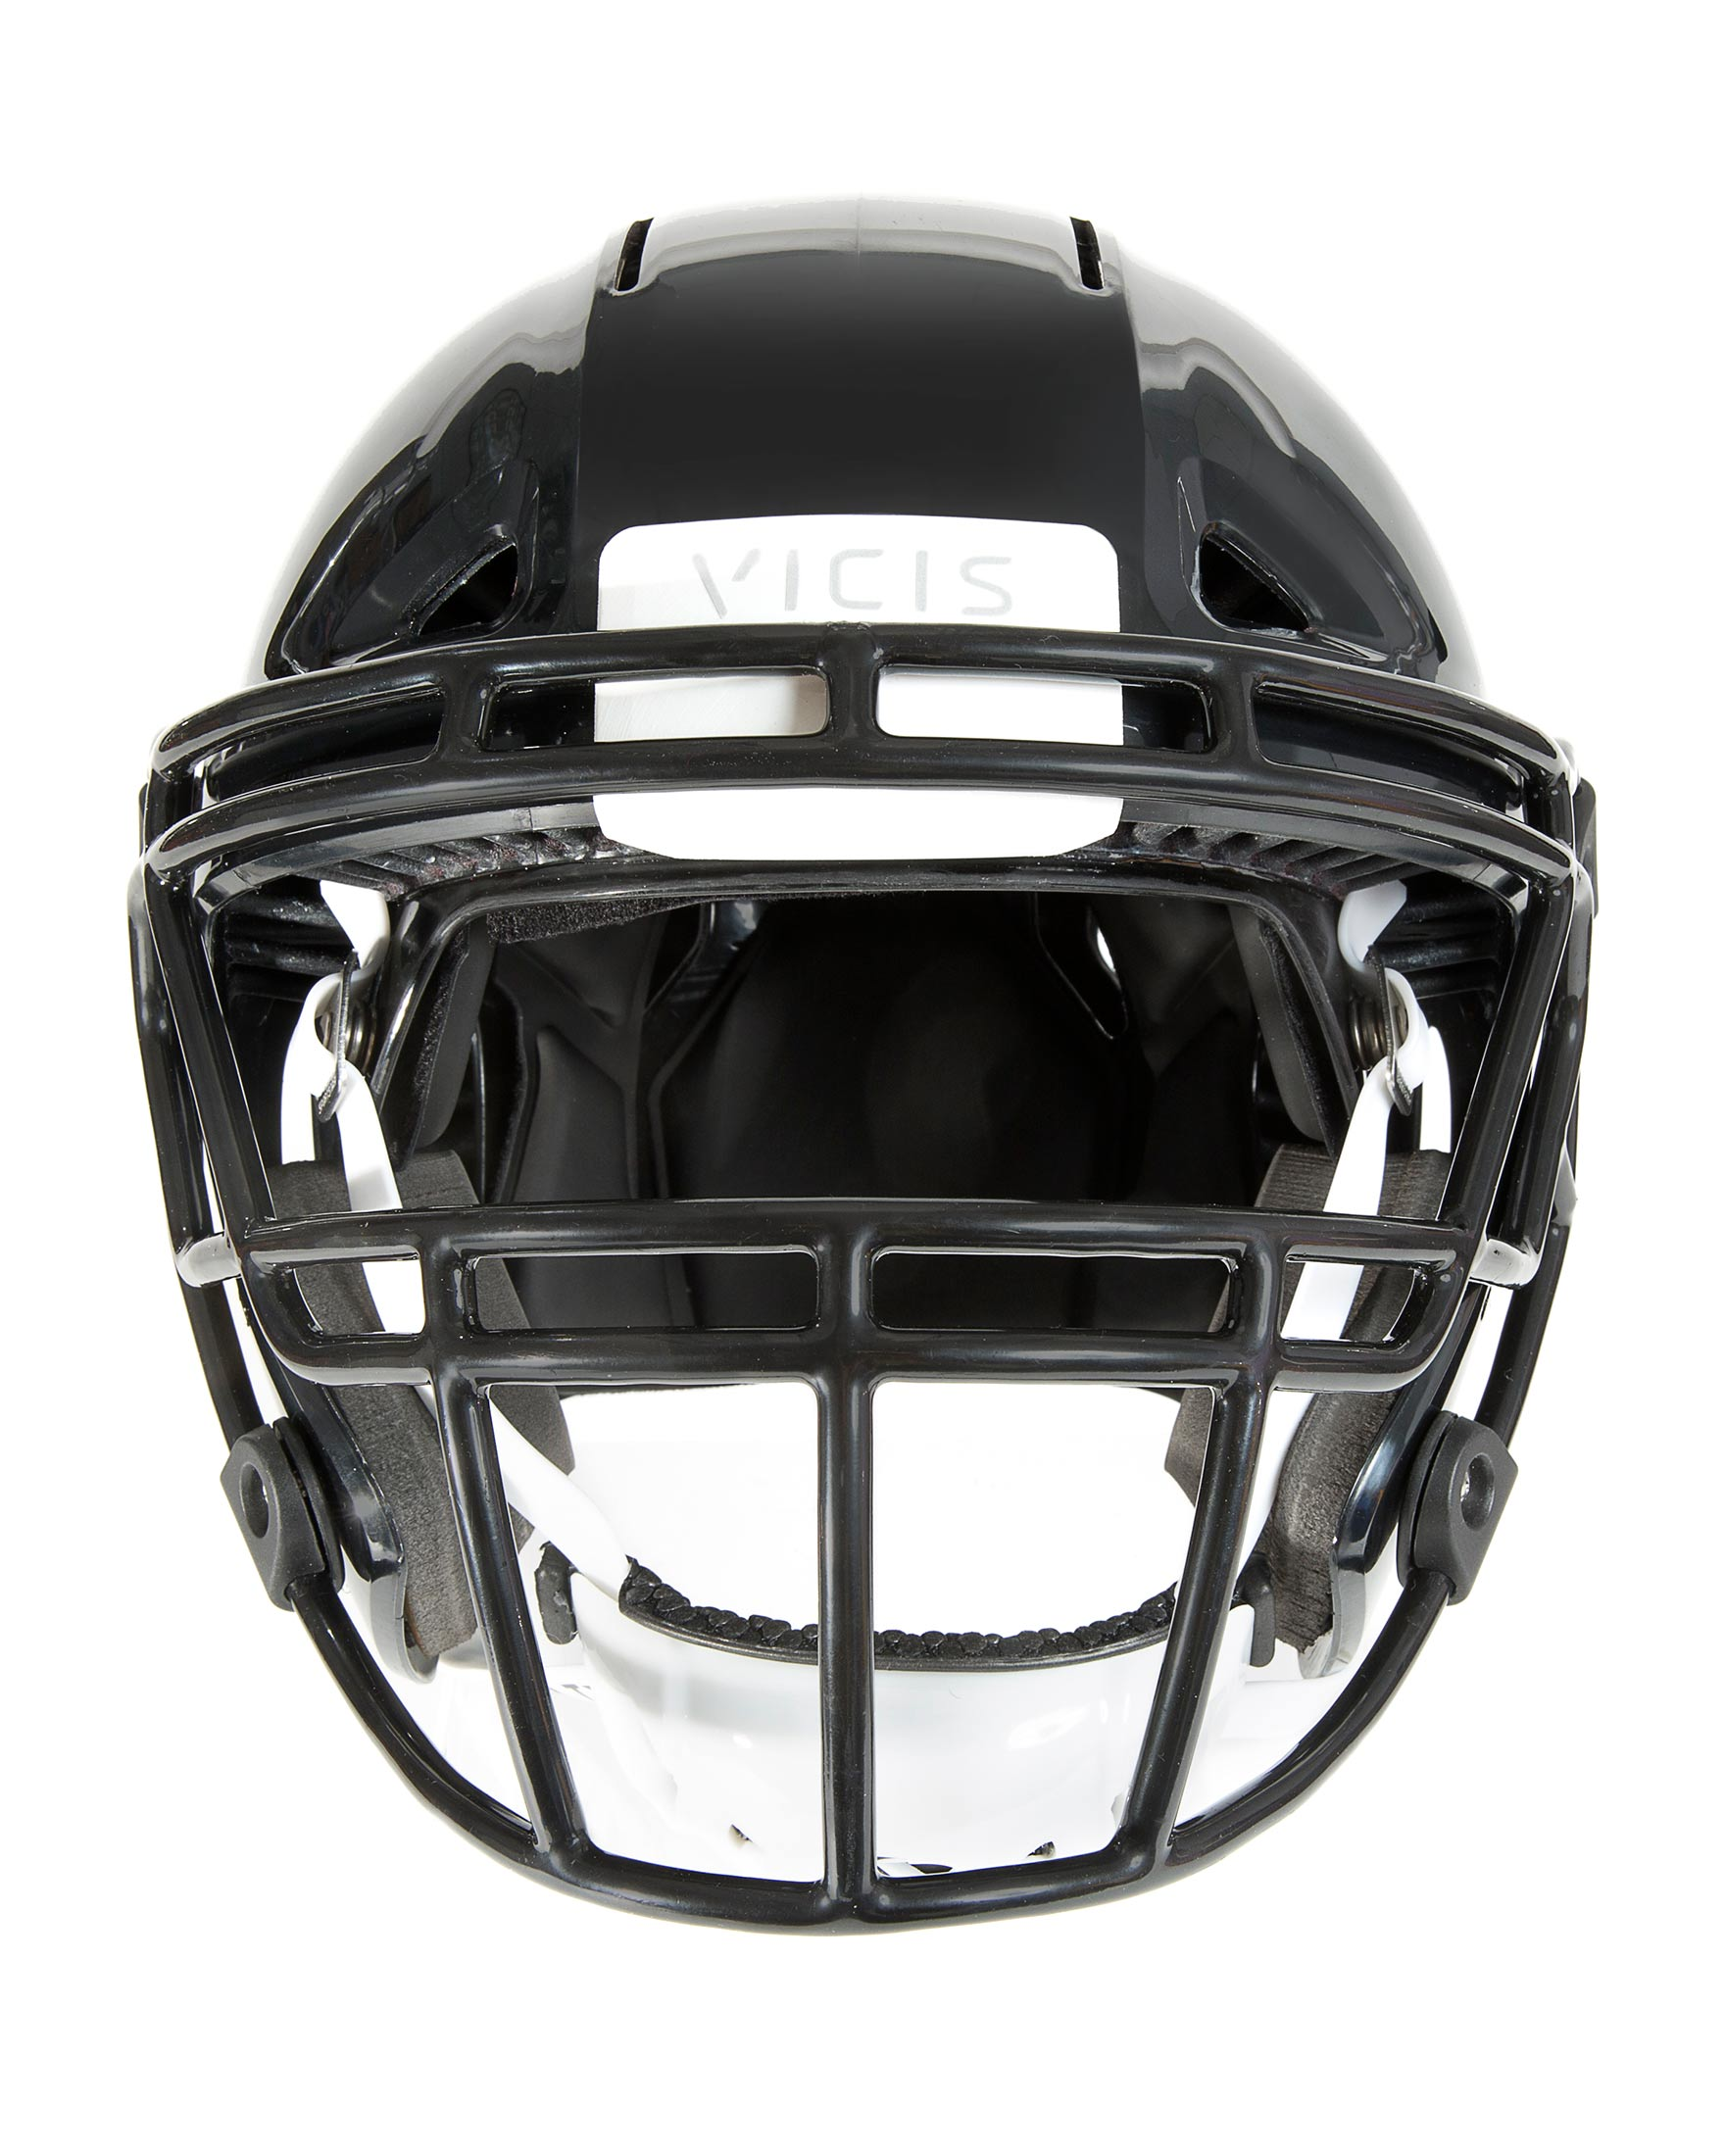 77e28f97 This Football Helmet Crumples—and That's Good